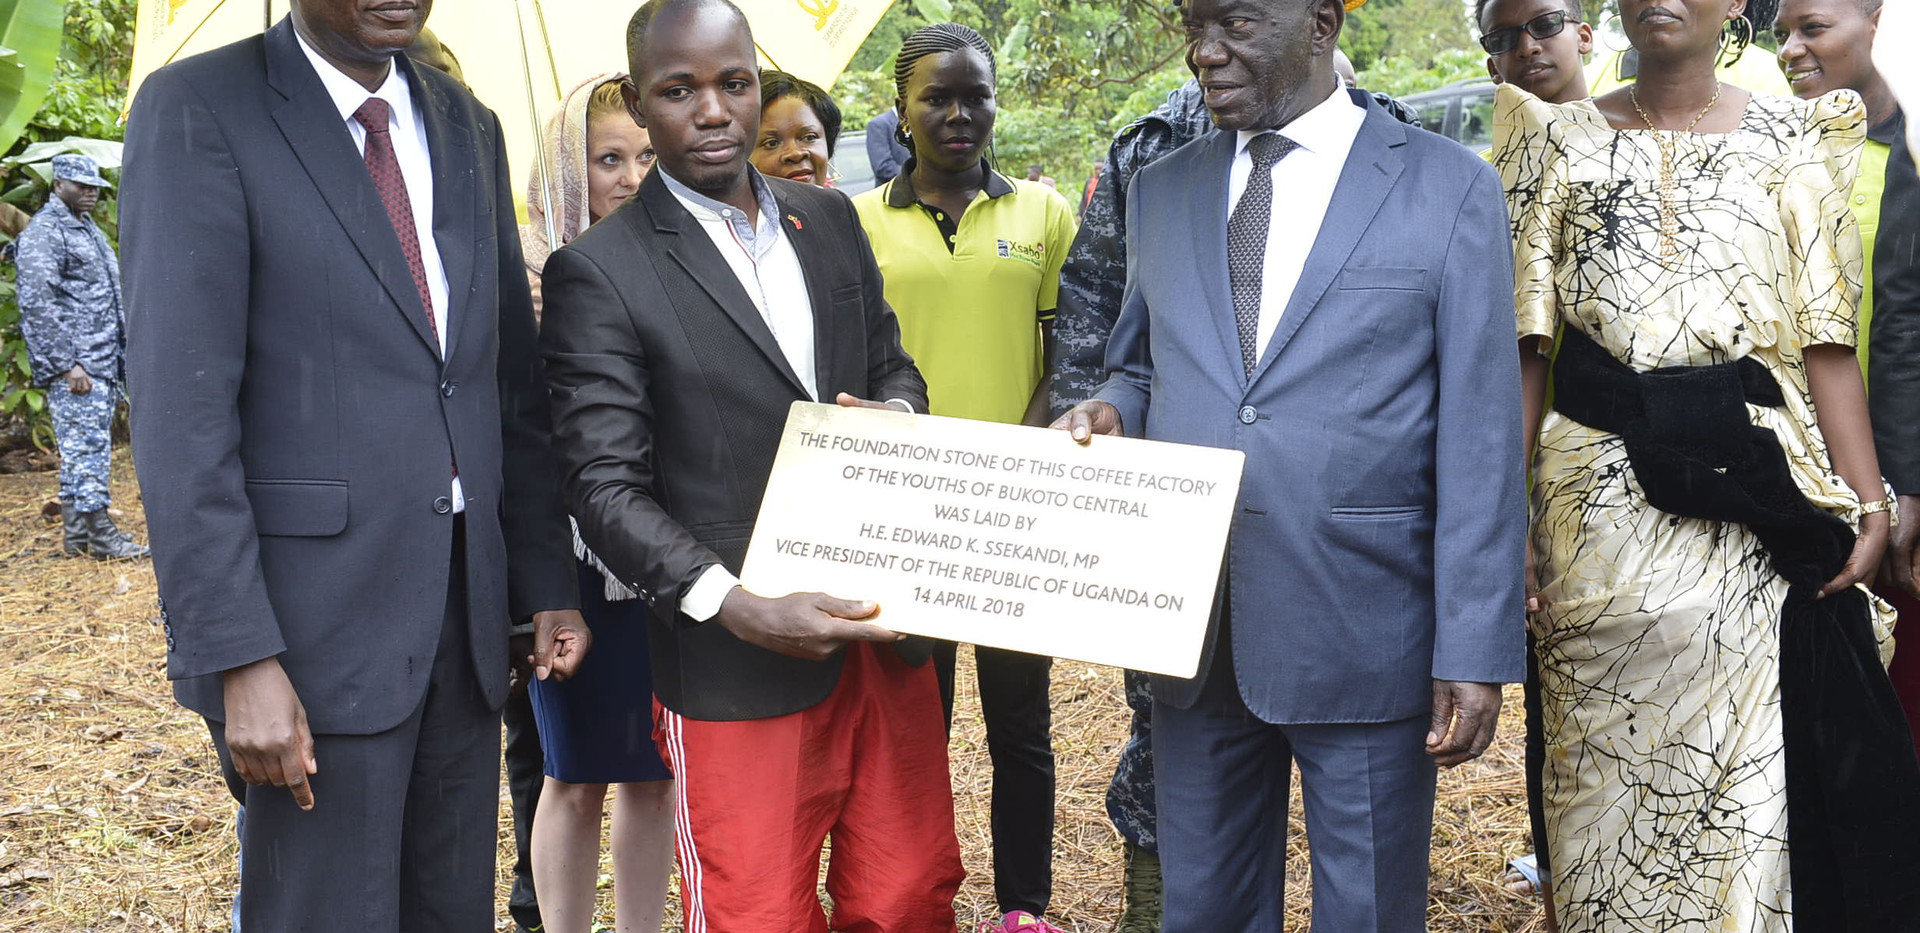 The foundation stone for the coffee factory for the youth was laid by Vice President Edward K. Ssekandi, here holding the plague together with Julius Kanamwanji, the youth leader.